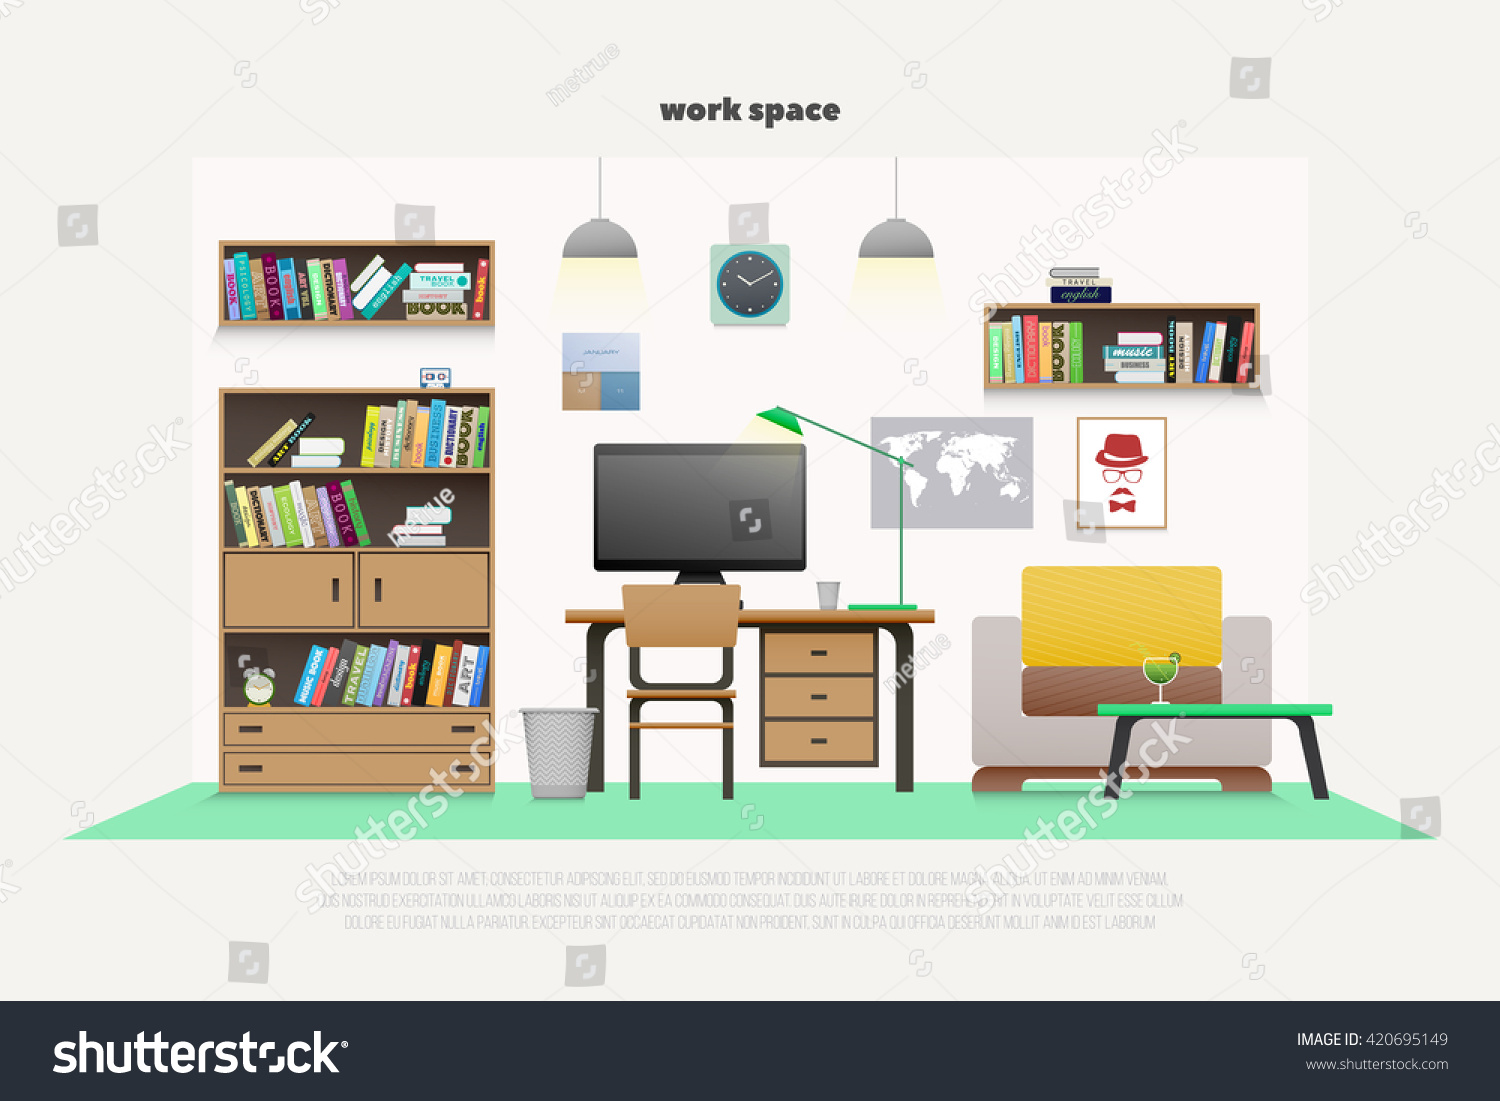 Interior wooden shelves free vector - Contemporary Work Place With Wooden Furniture And Professional Tools Vector Flat Style Office Interior